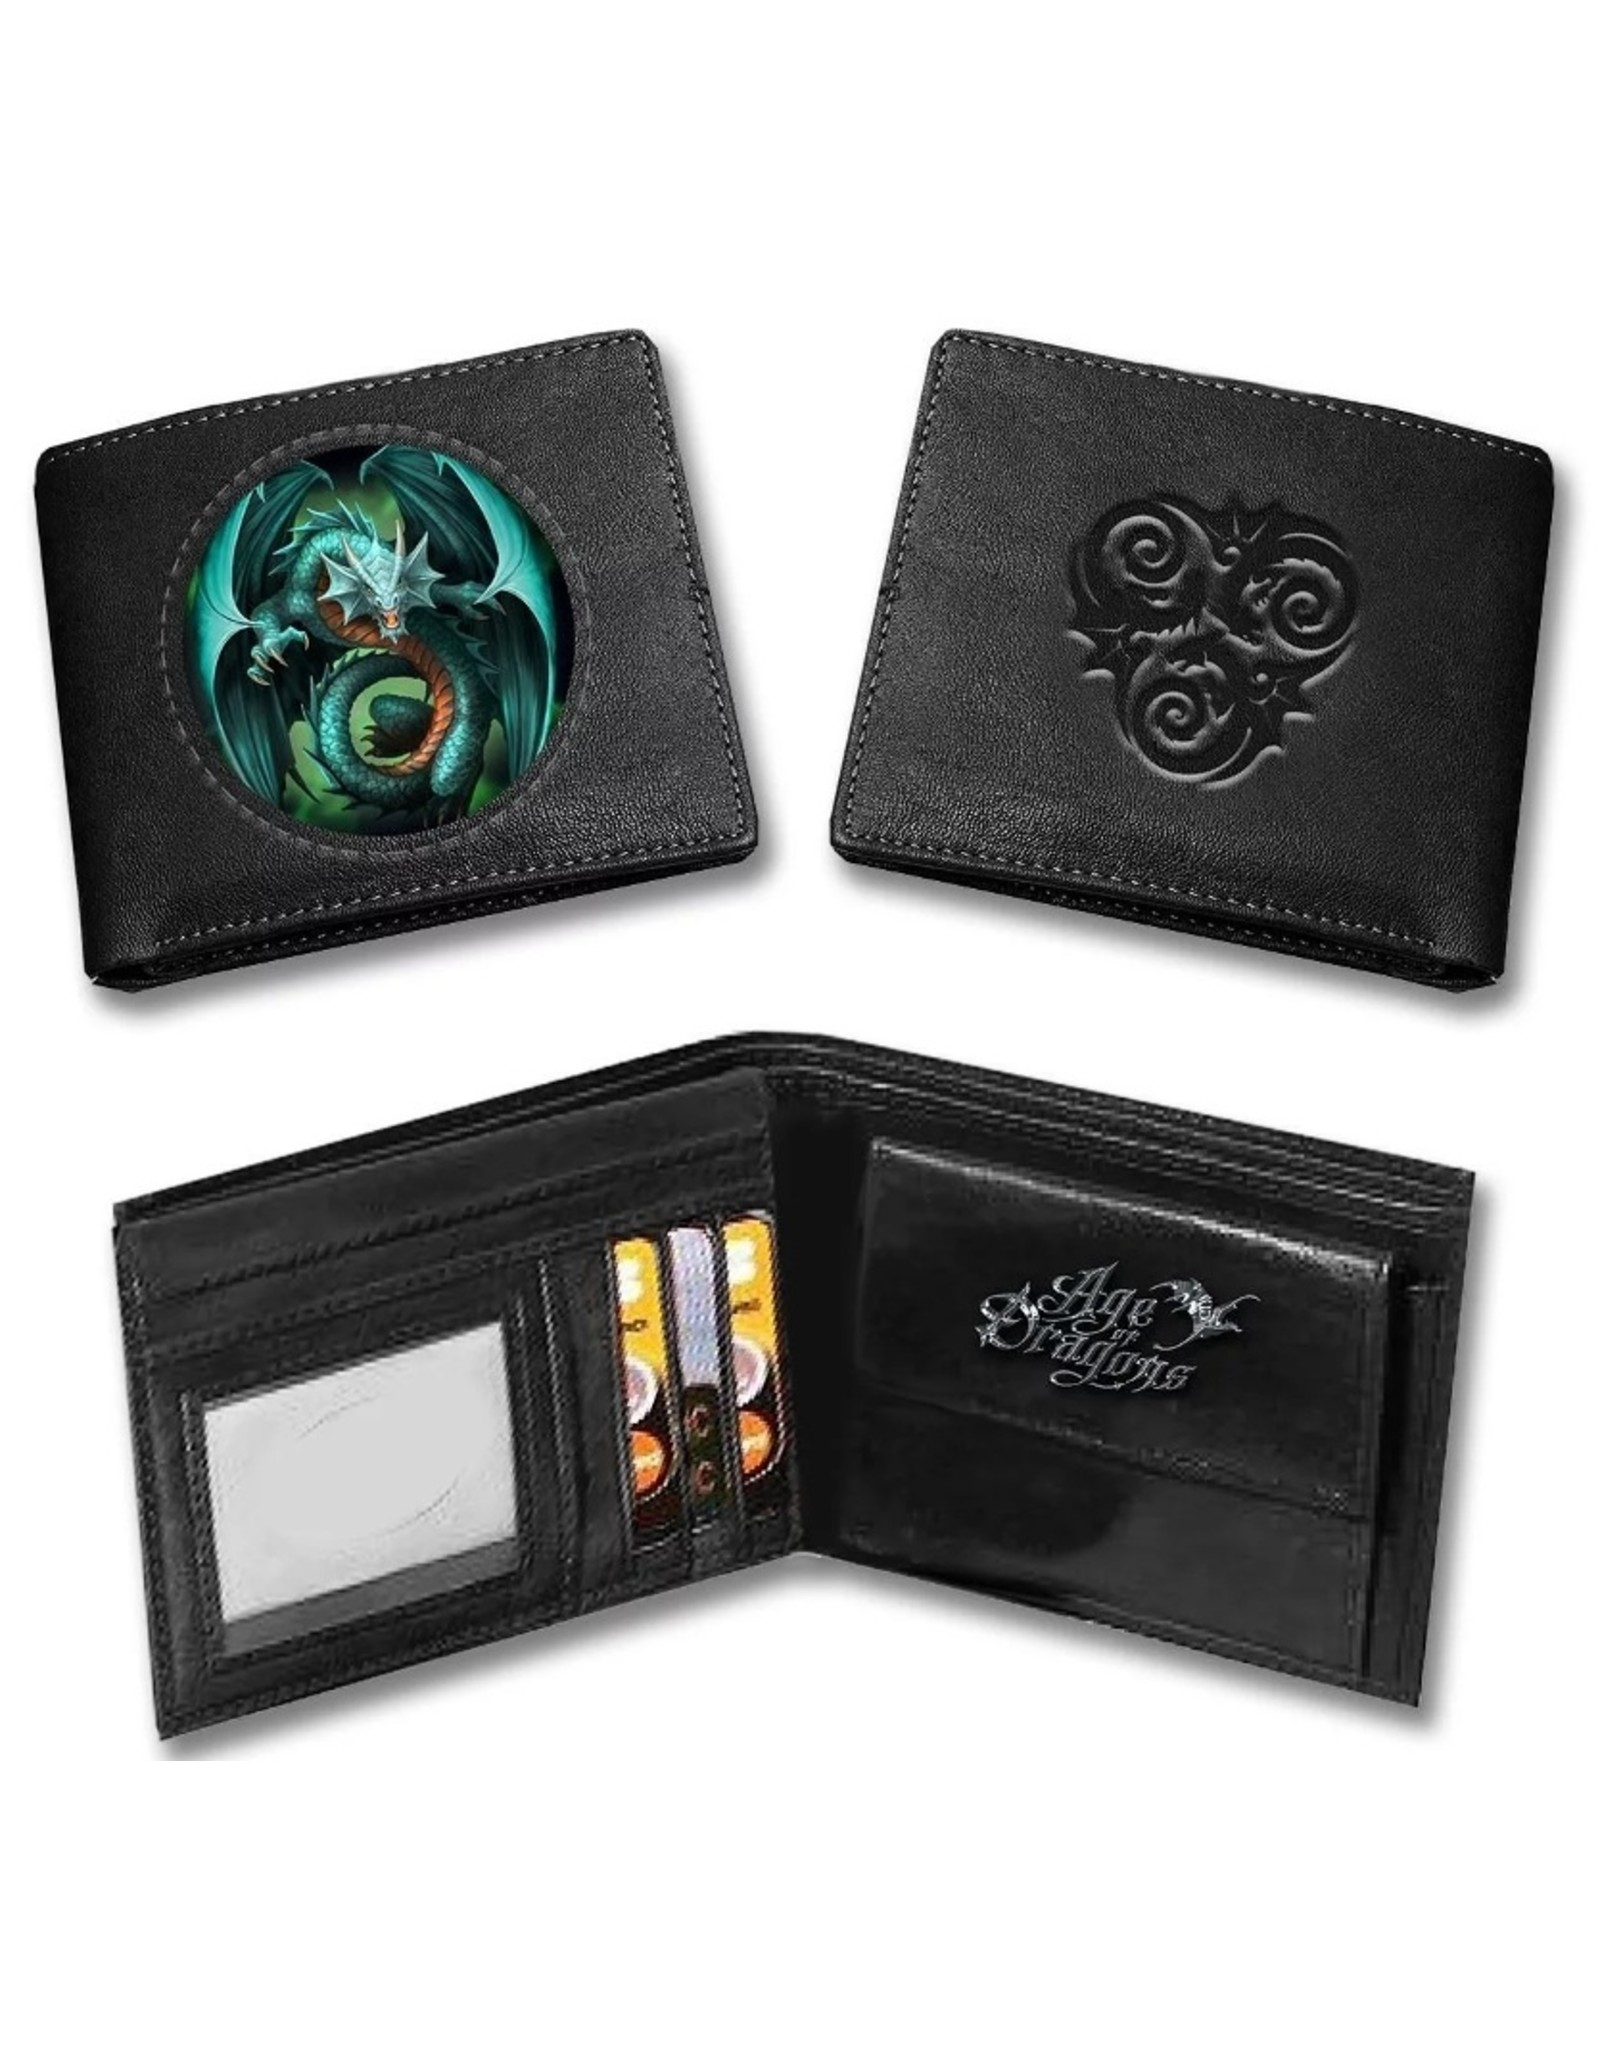 Anne Stokes Gothic wallets and purses - Anne Stokes 3D lenticular purse Tribal Dragon (Age of Dragons)